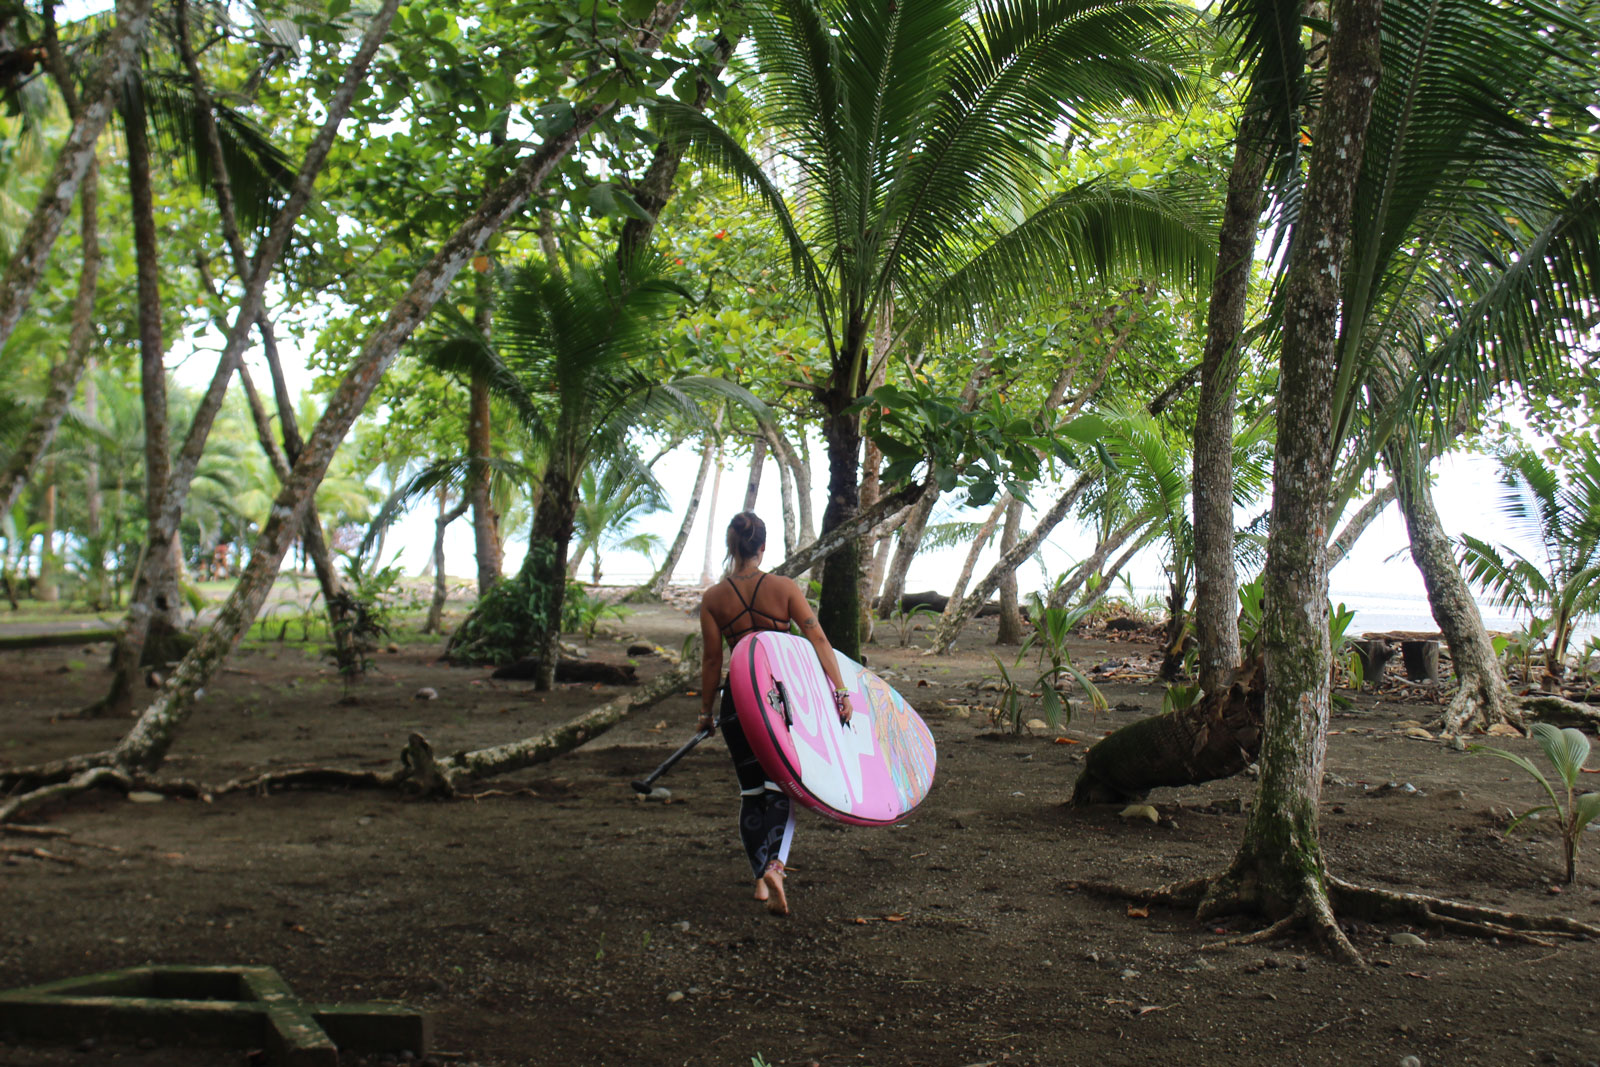 Your-SUP-Travel-Guide-to-Costa-Rica-with-Ciretta-Wanderlust-trees